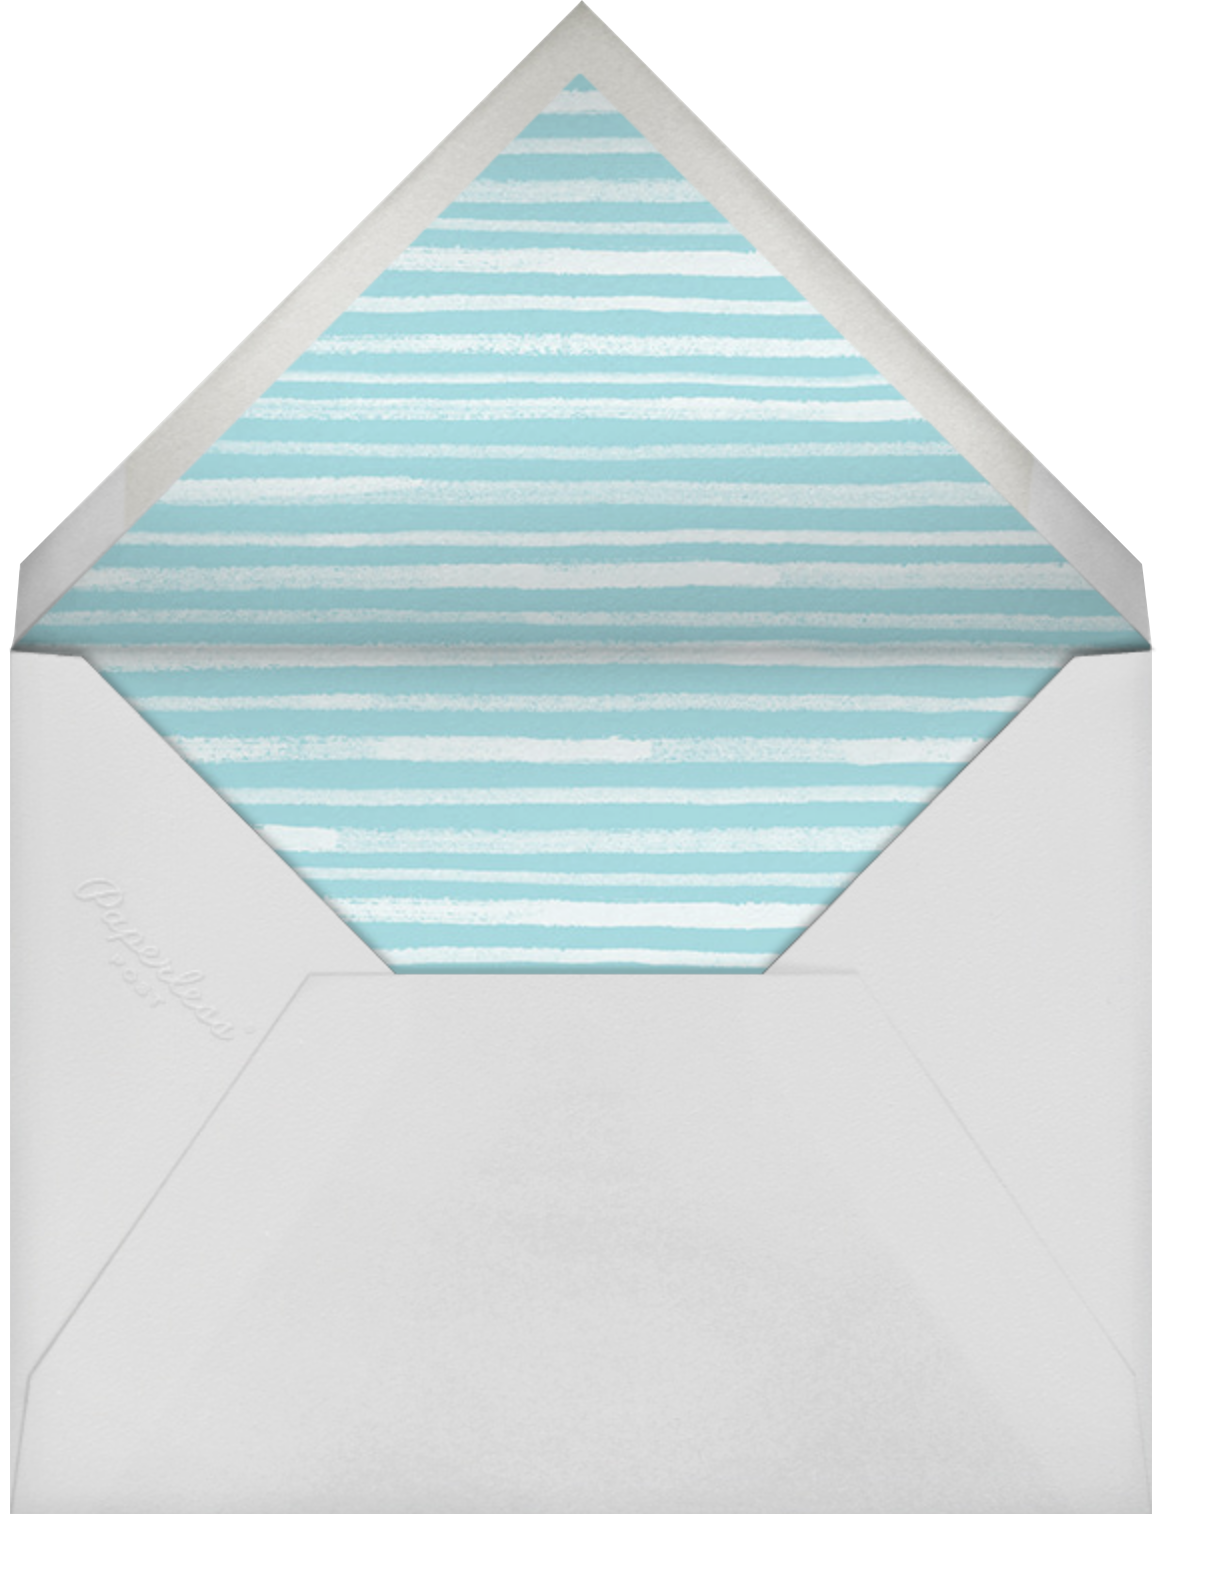 Tropical Palm - Caribbean - Paperless Post - All - envelope back